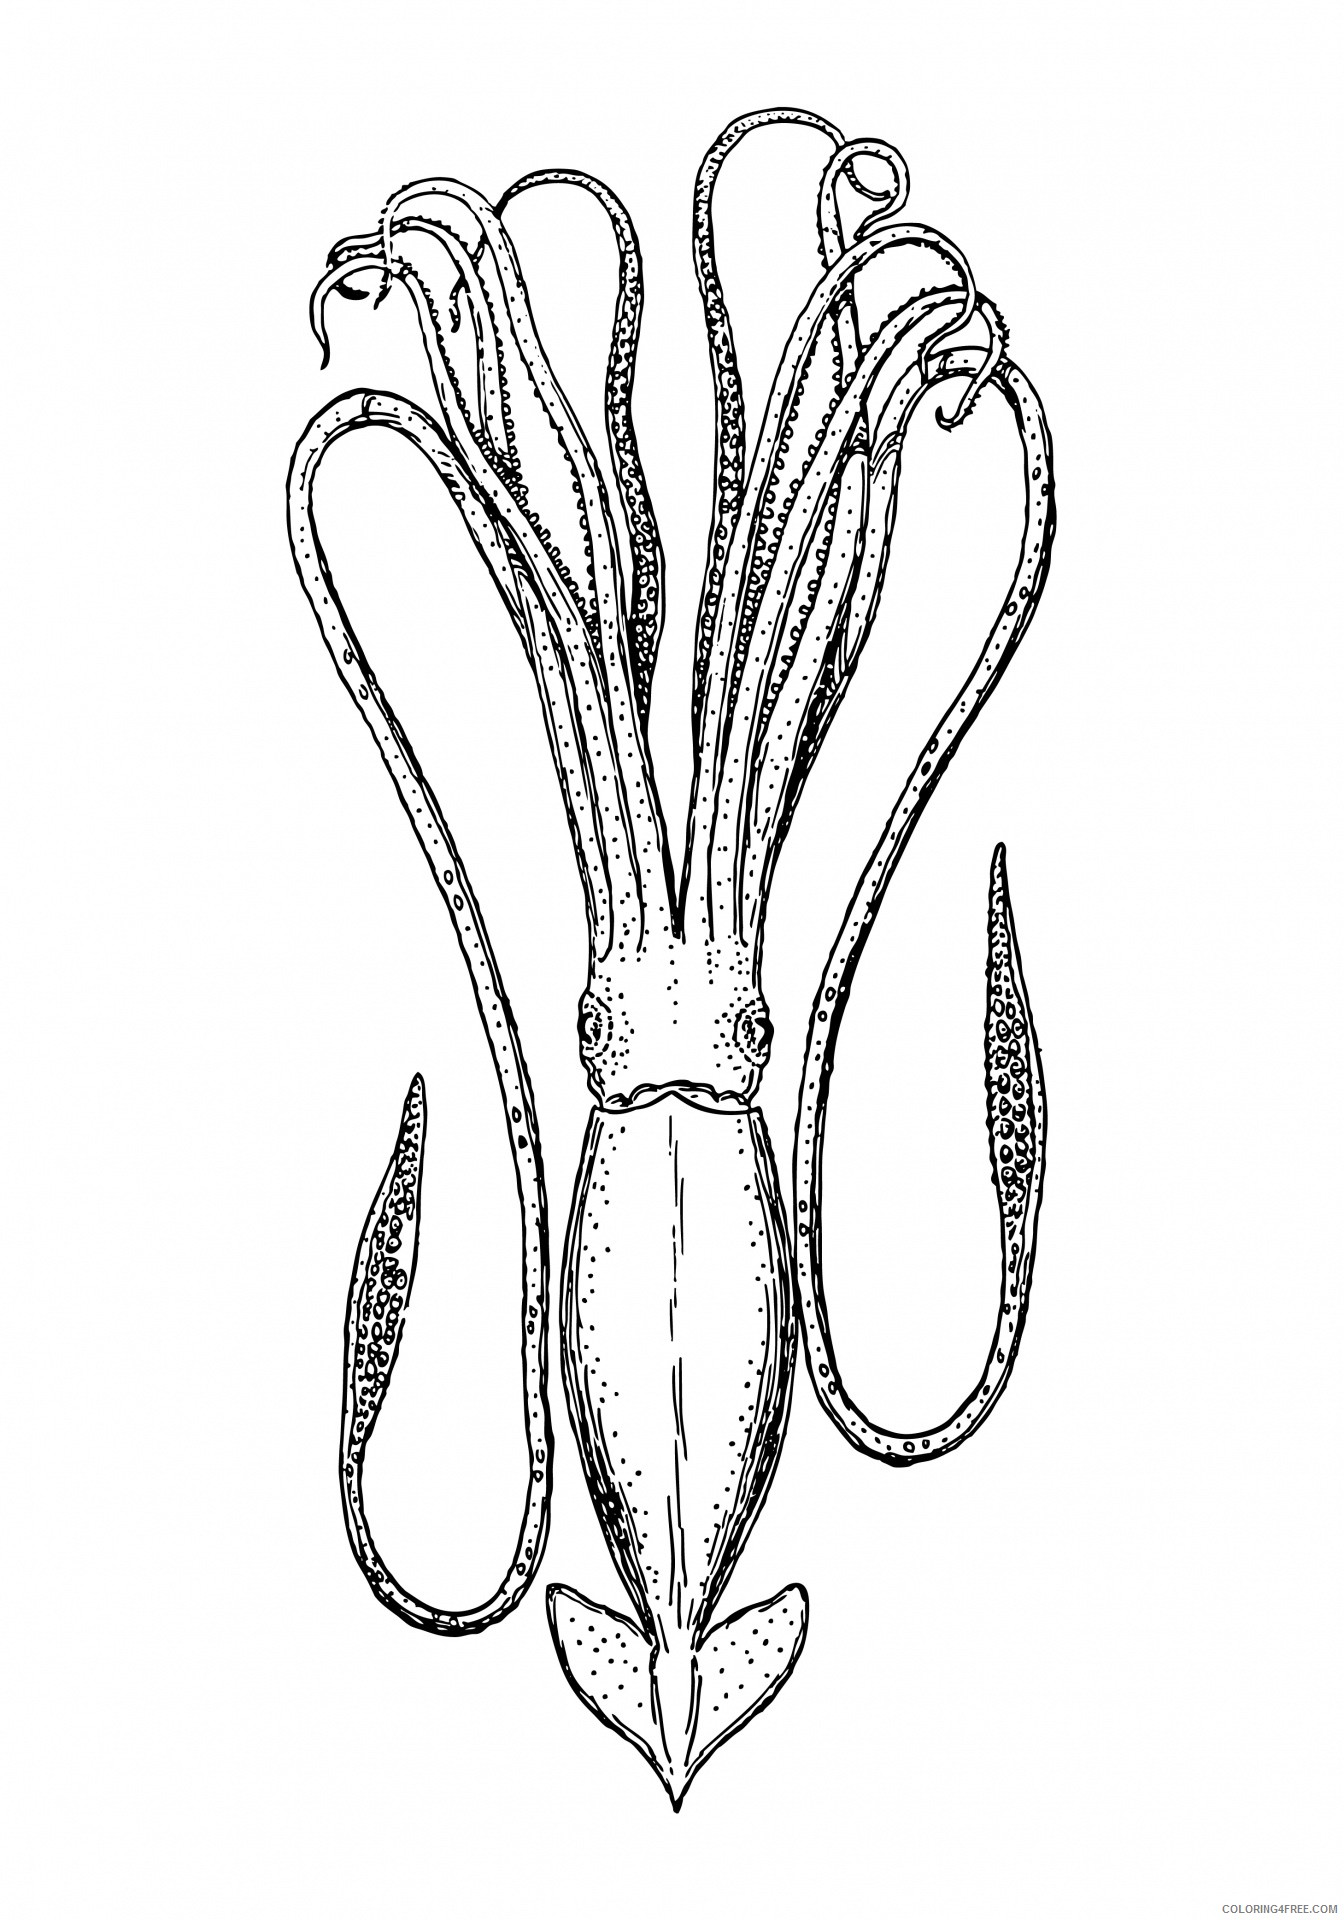 Squid Coloring Pages Squid 16 Jpg Printable Coloring4free Coloring4free Com